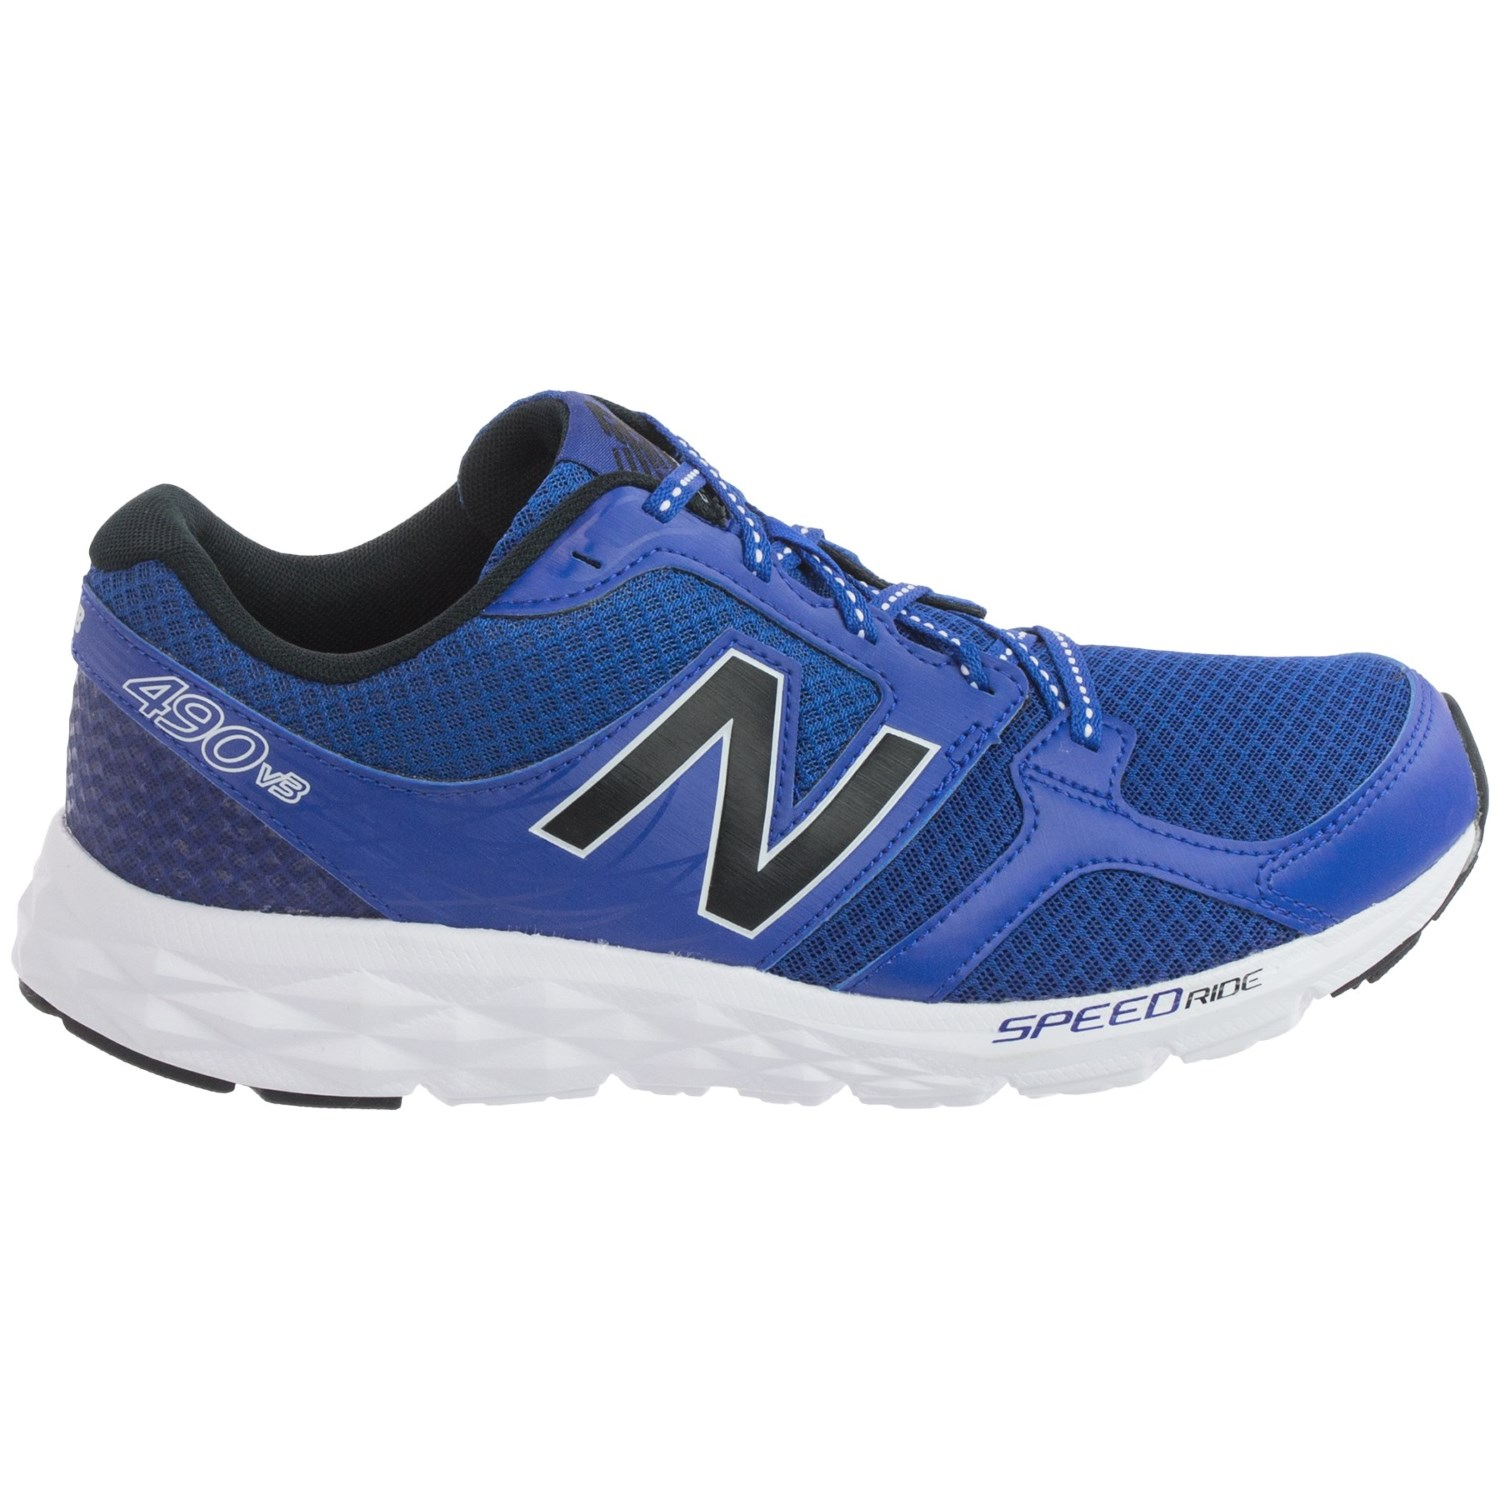 New balance running shoes for men